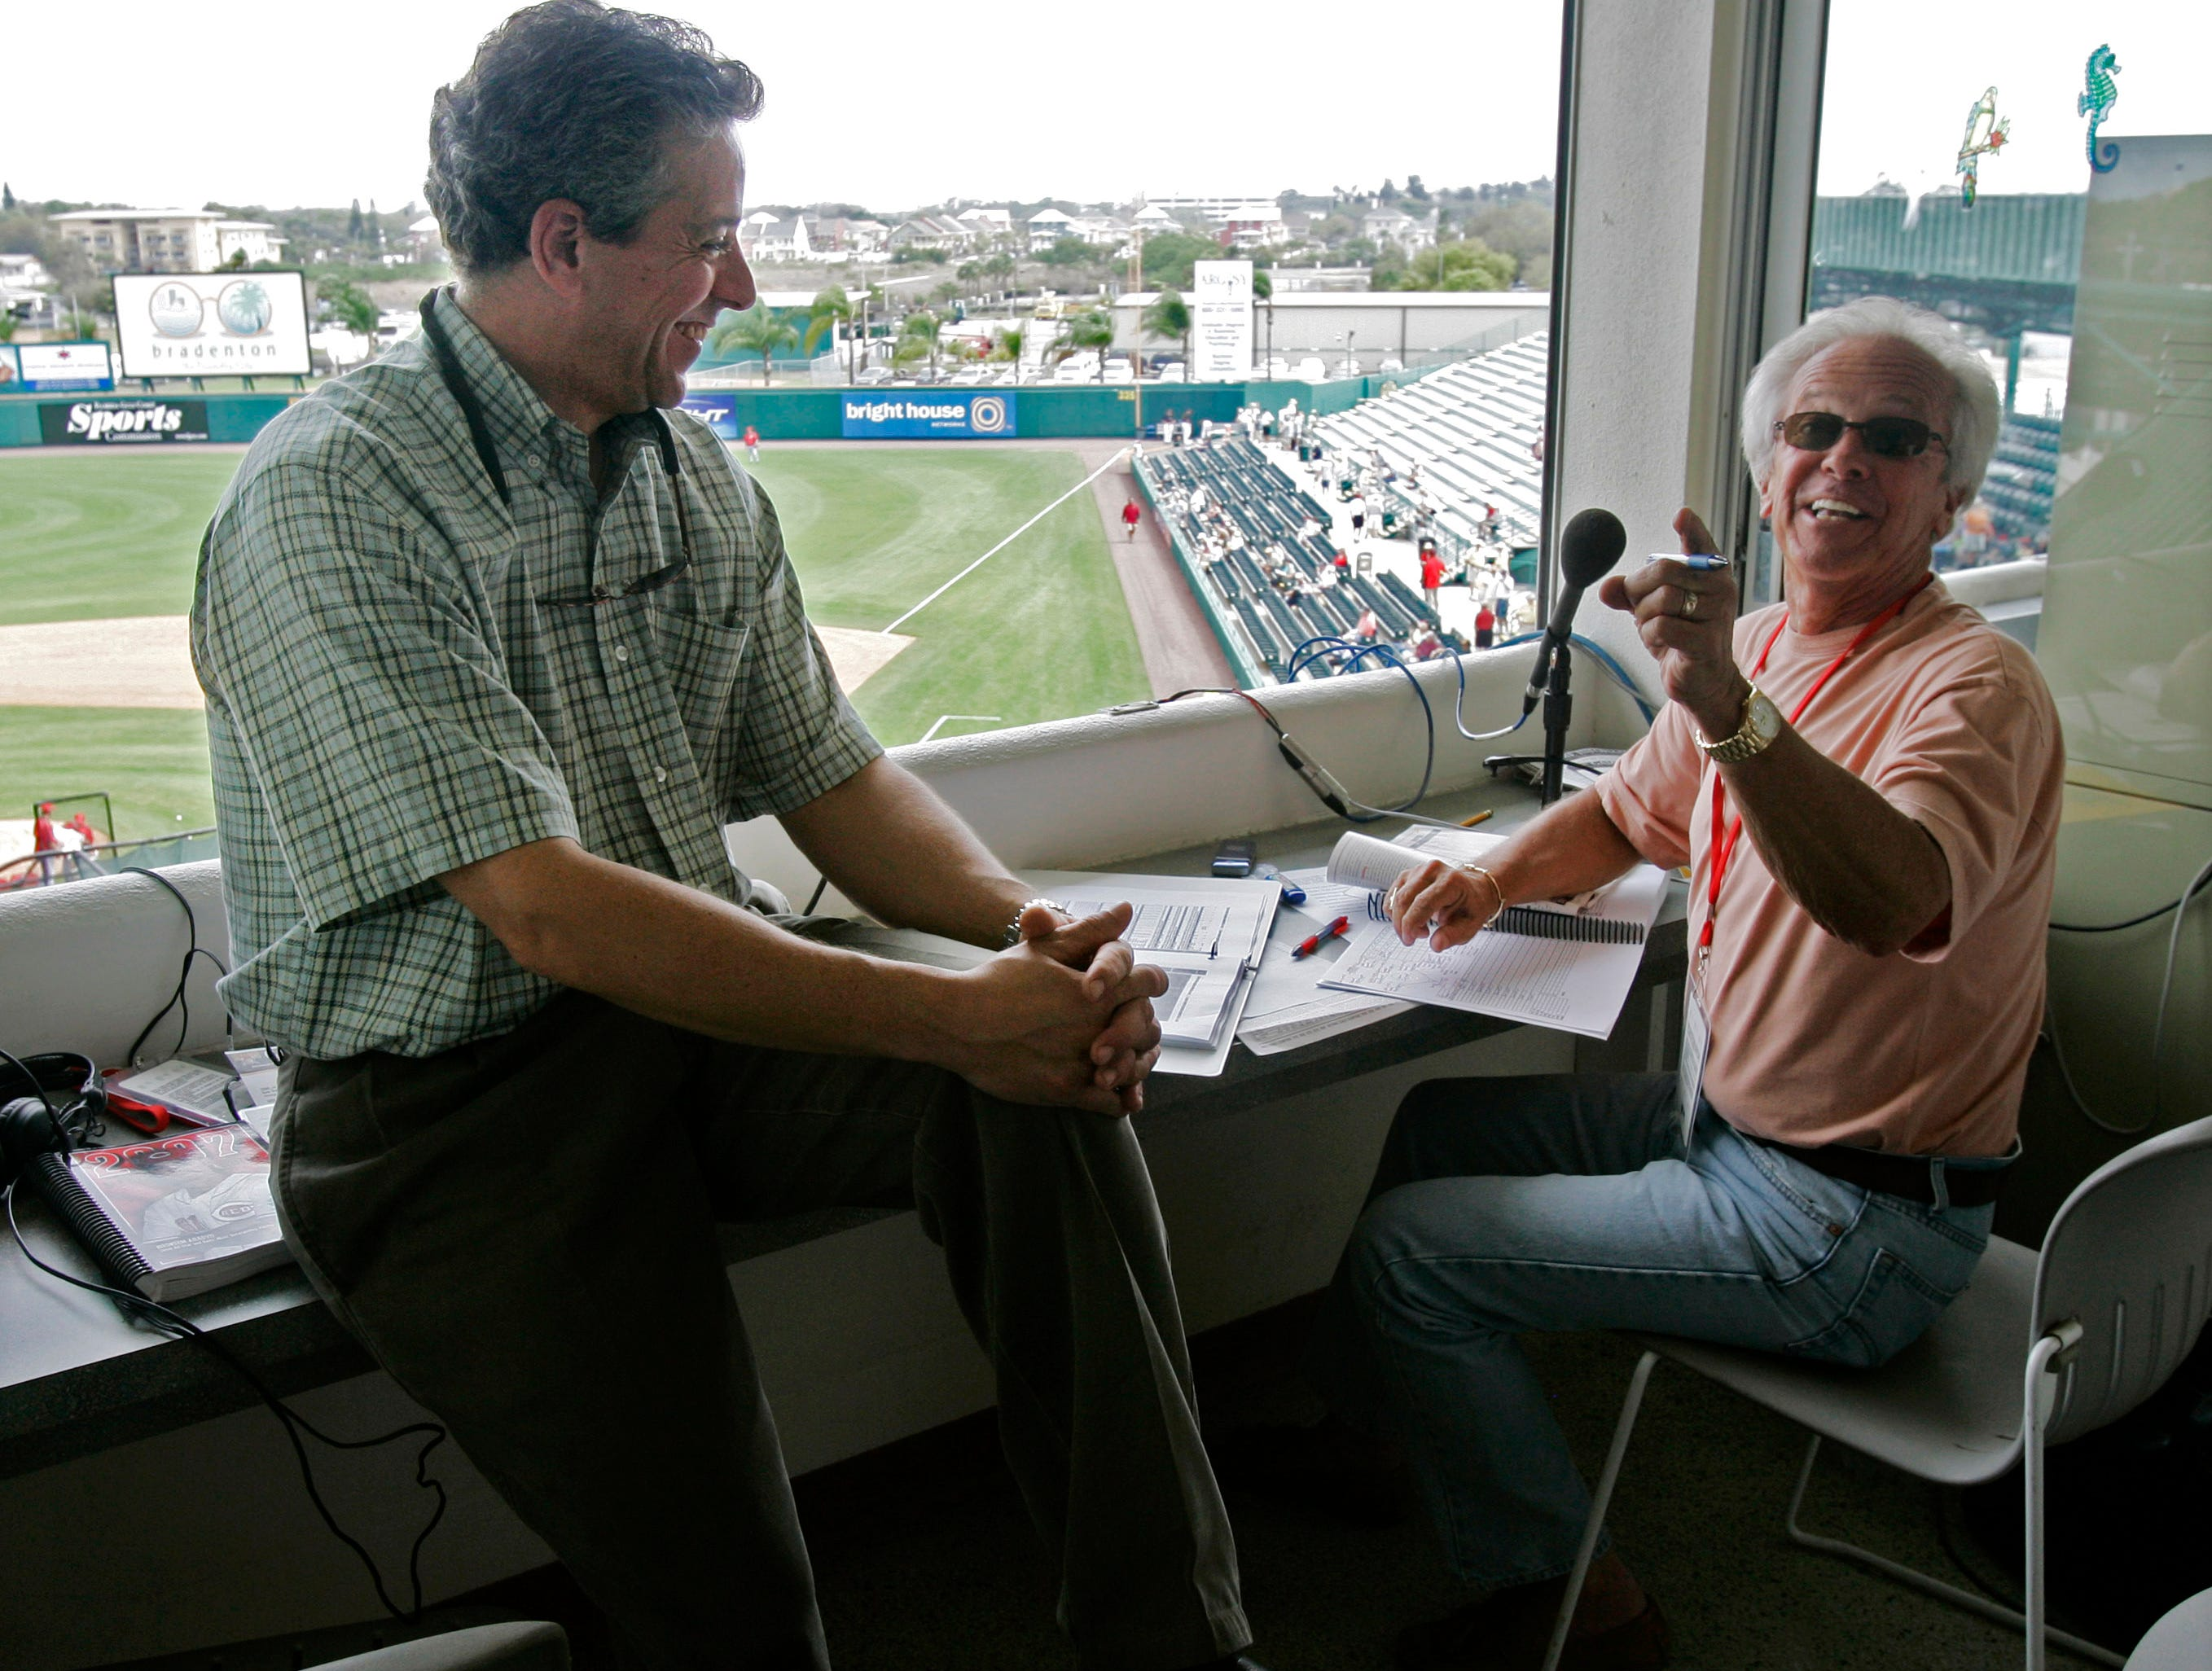 Cincinnati Reds broadcasters Thom Brennaman, left, and his father, Marty Brennaman, joke in the broadcasting booth prior to a spring training baseball game against the Pittsburgh Pirates, Thursday, March 1, 2007, in Bradenton, Fla. The two were doing their first Reds broadcast together.